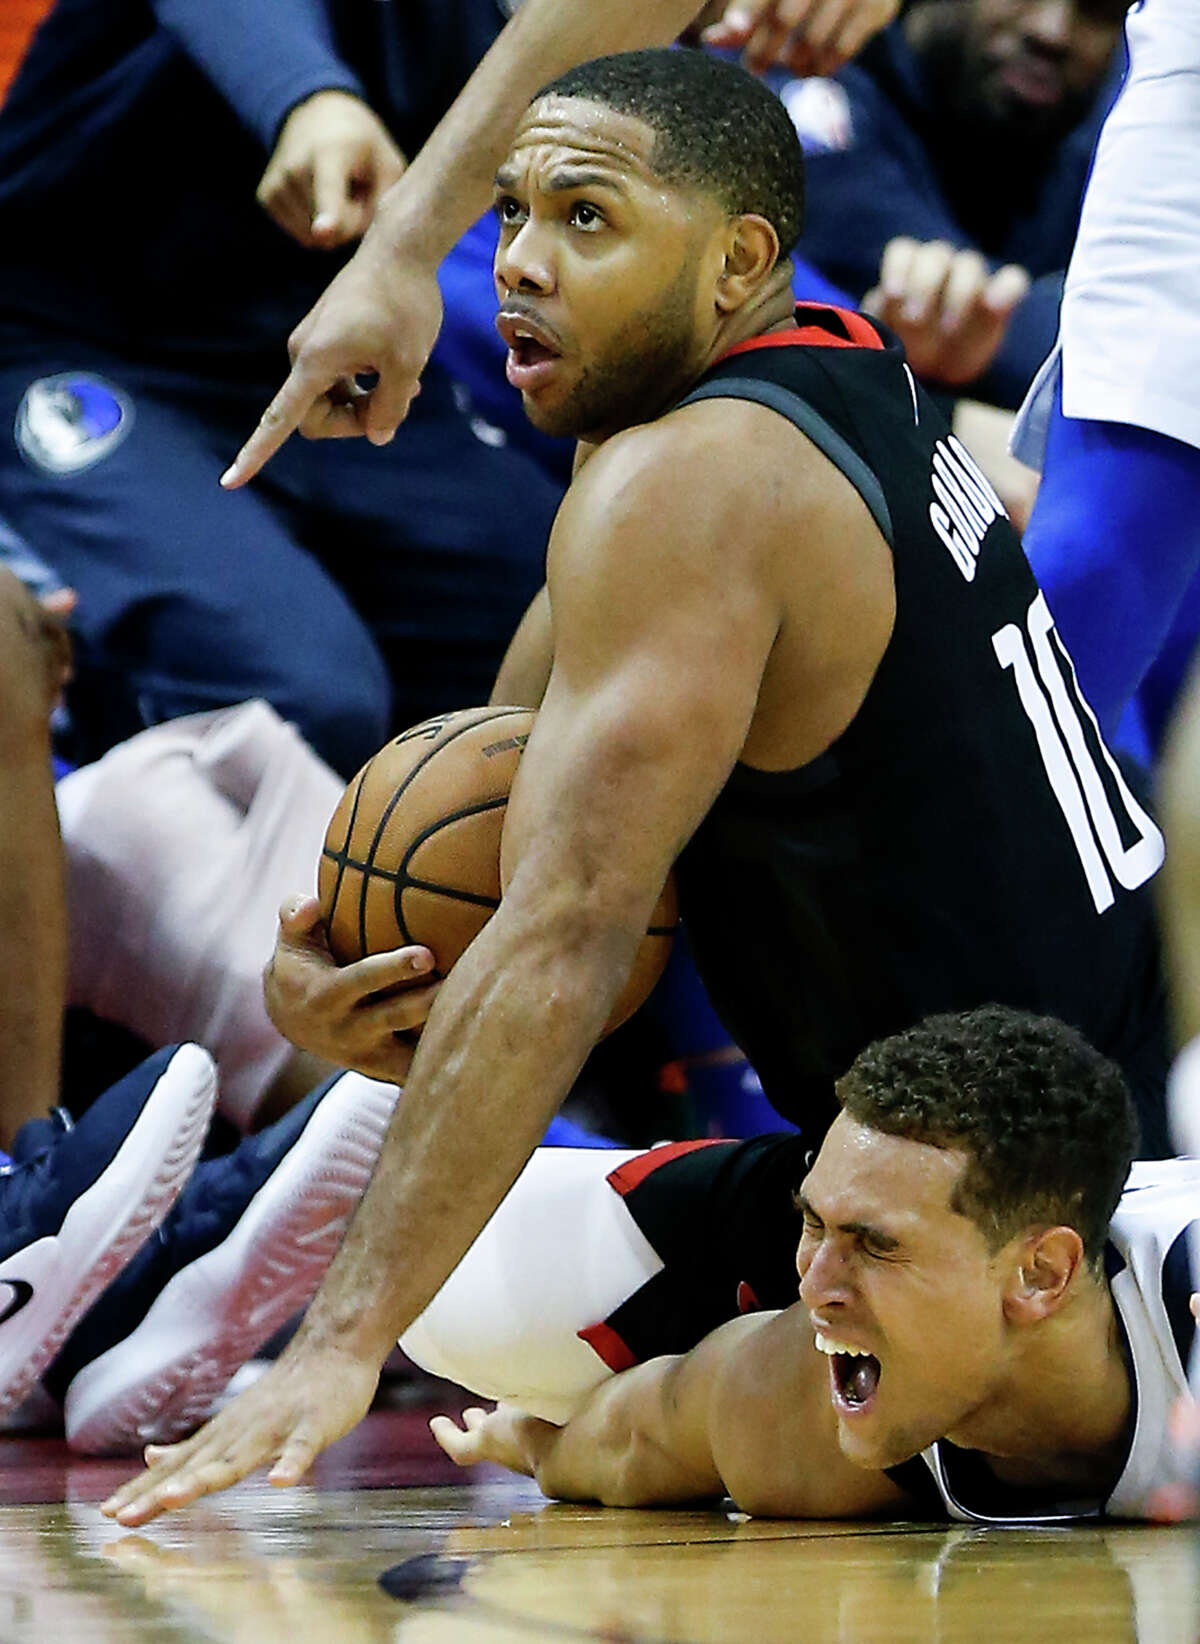 Houston Rockets guard Eric Gordon (10) and Dallas Mavericks forward Dwight Powell go to the floor after a loose ball during the second half of an NBA basketball game at Toyota Center on Wednesday, Nov. 28, 2018, in Houston.